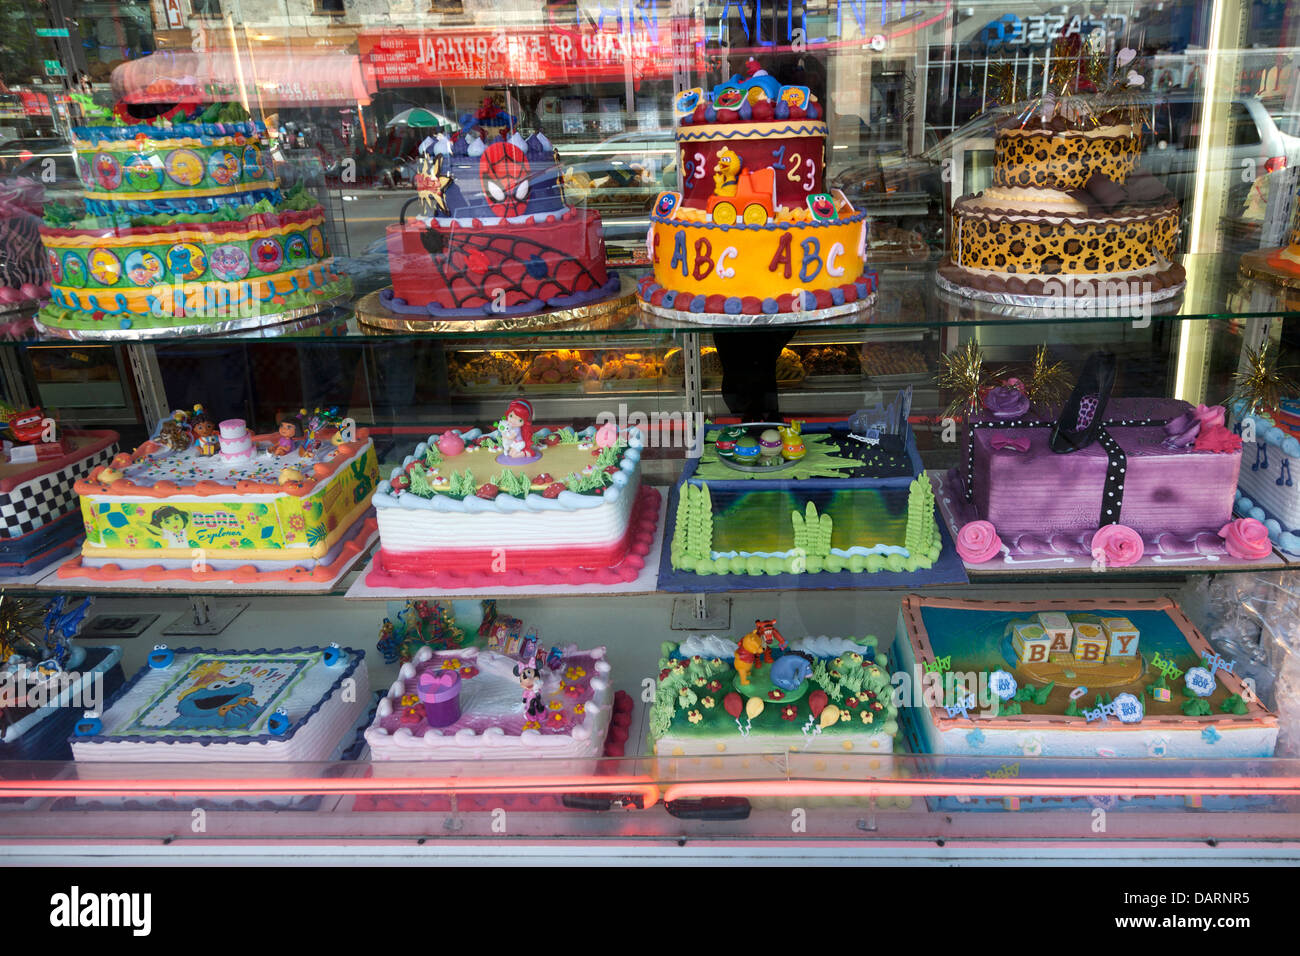 Birthday Cakes Ina Shop In New York City Stock Photo 58299673 Alamy